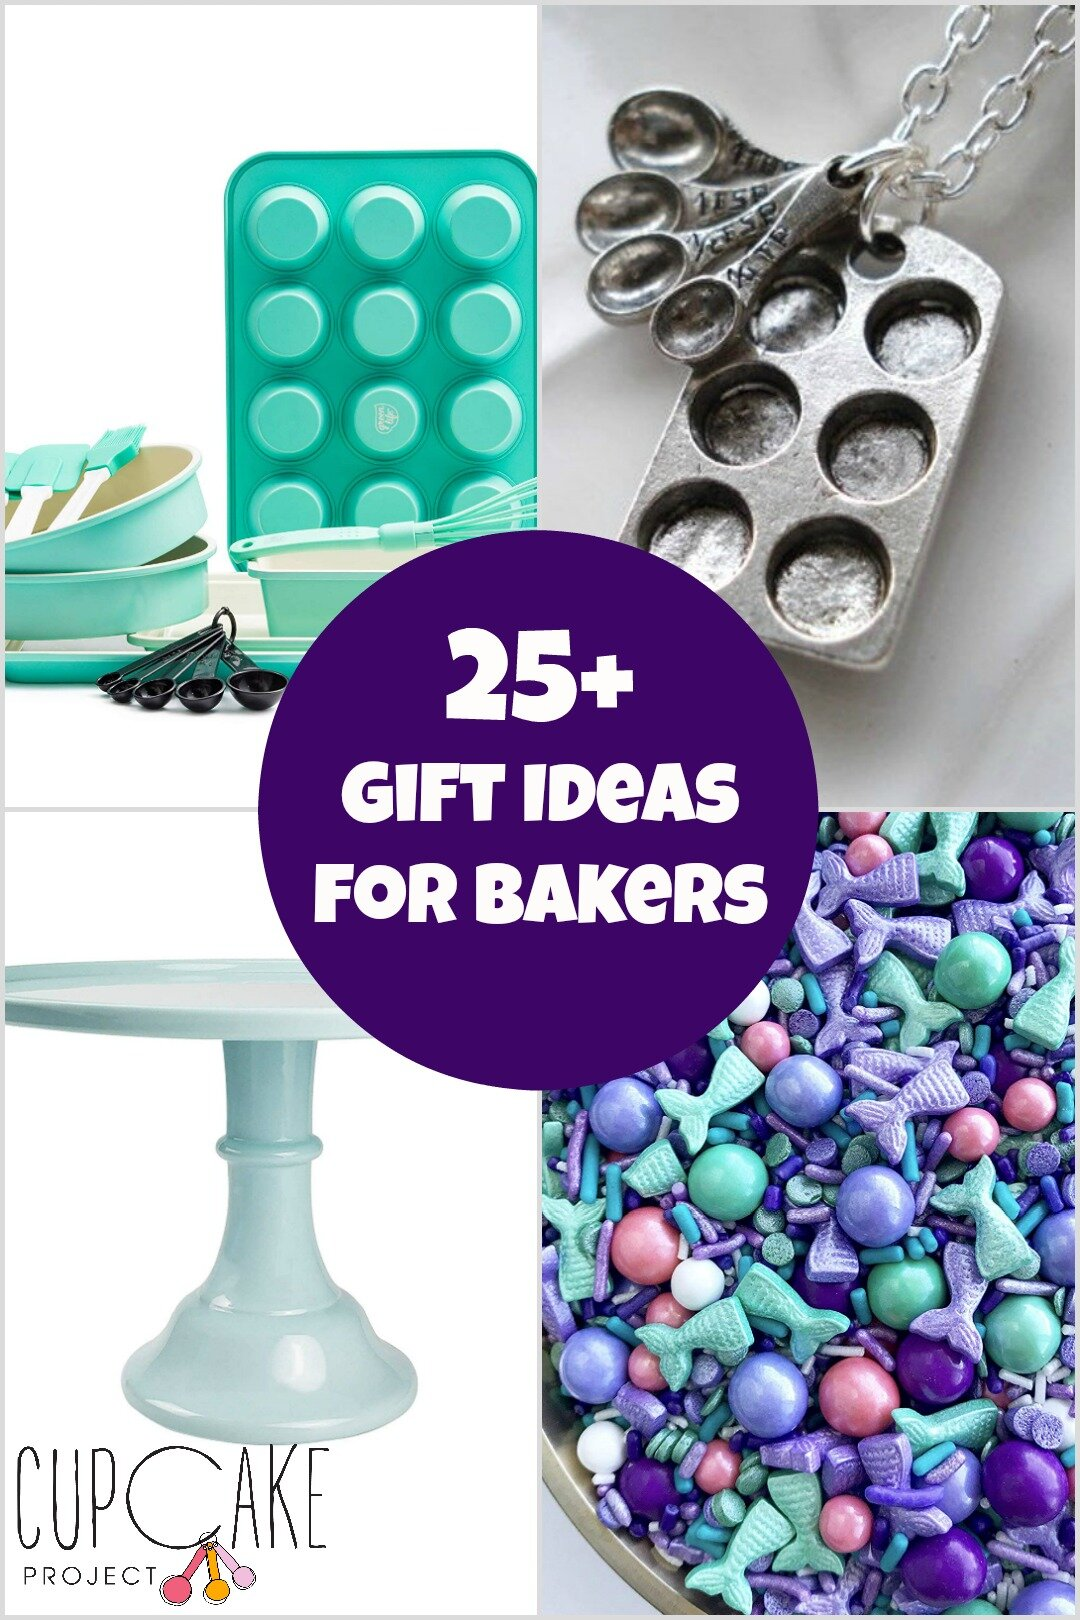 25+ Gift Ideas for Bakers